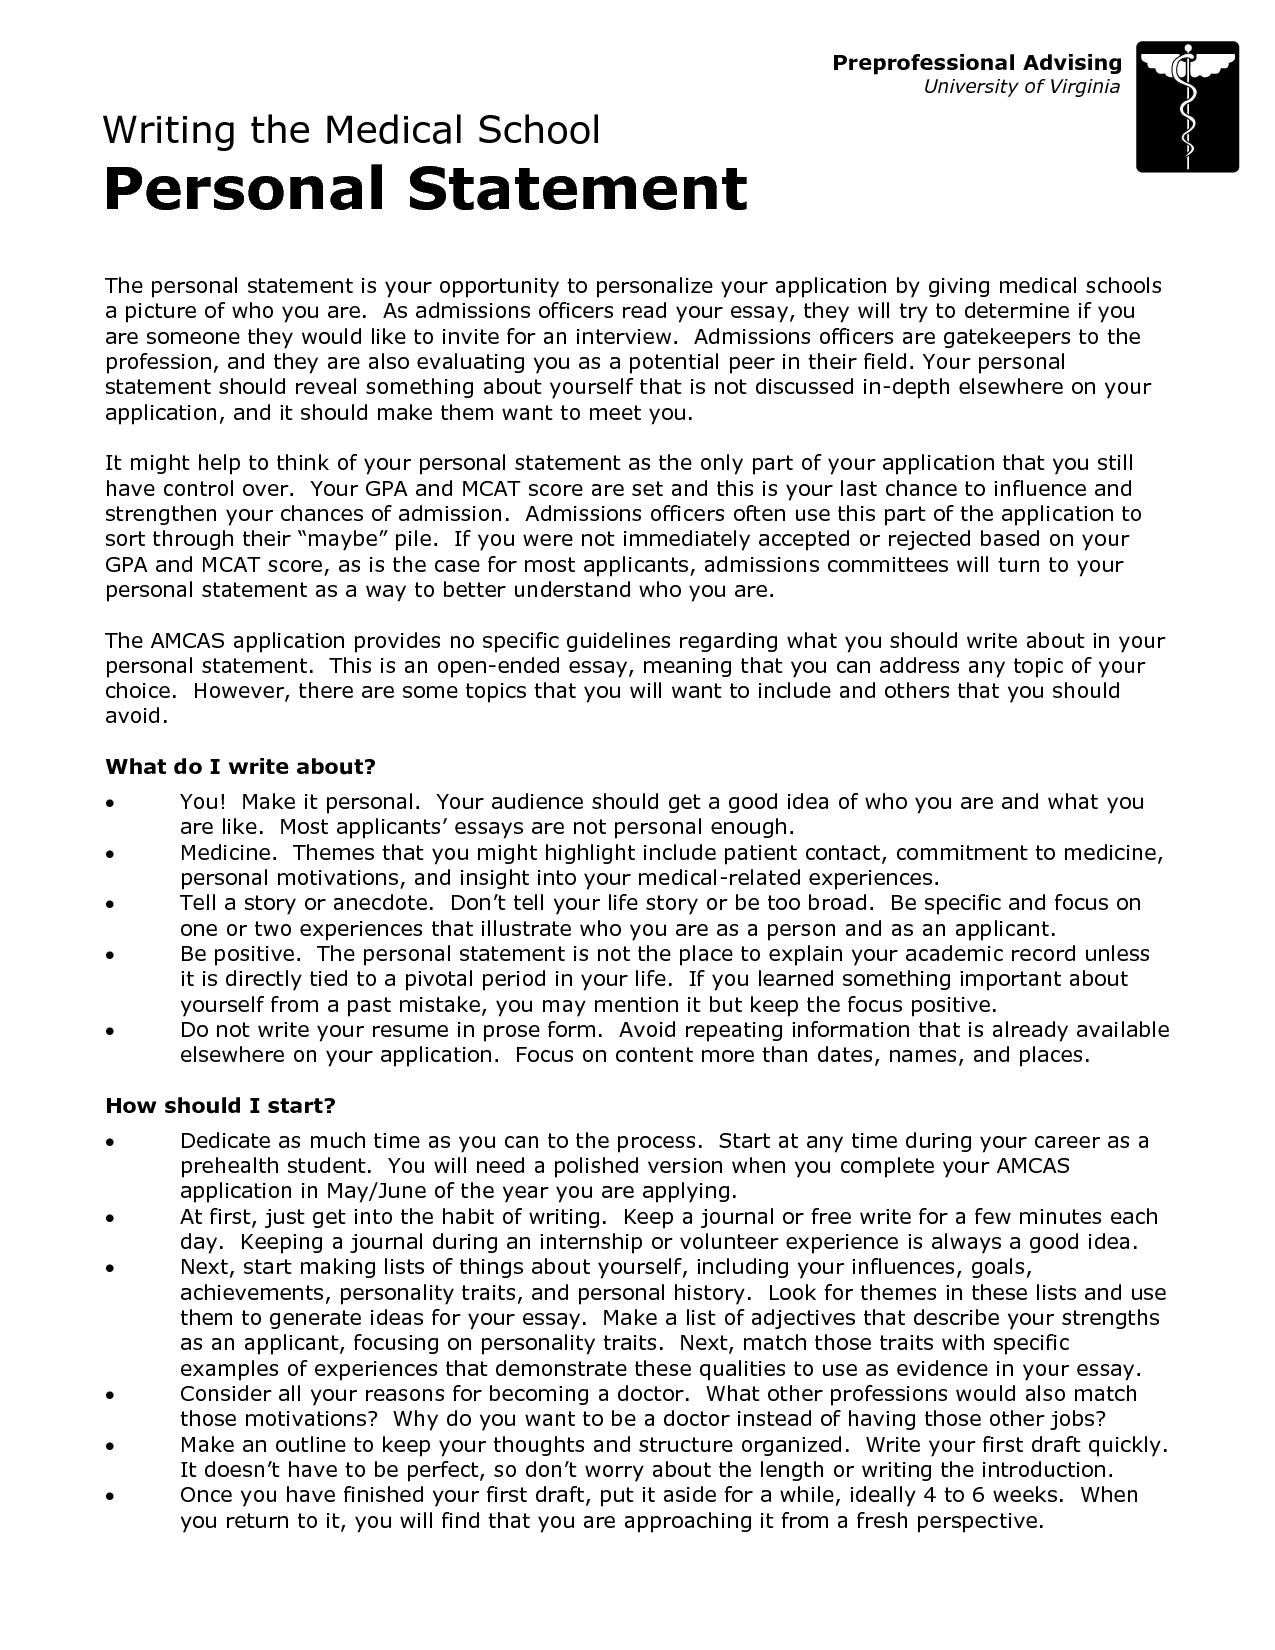 how to write personal statement for grad school More detailed information to aid undergraduate students in writing a personal  statement or statement of purpose for their graduate school application.